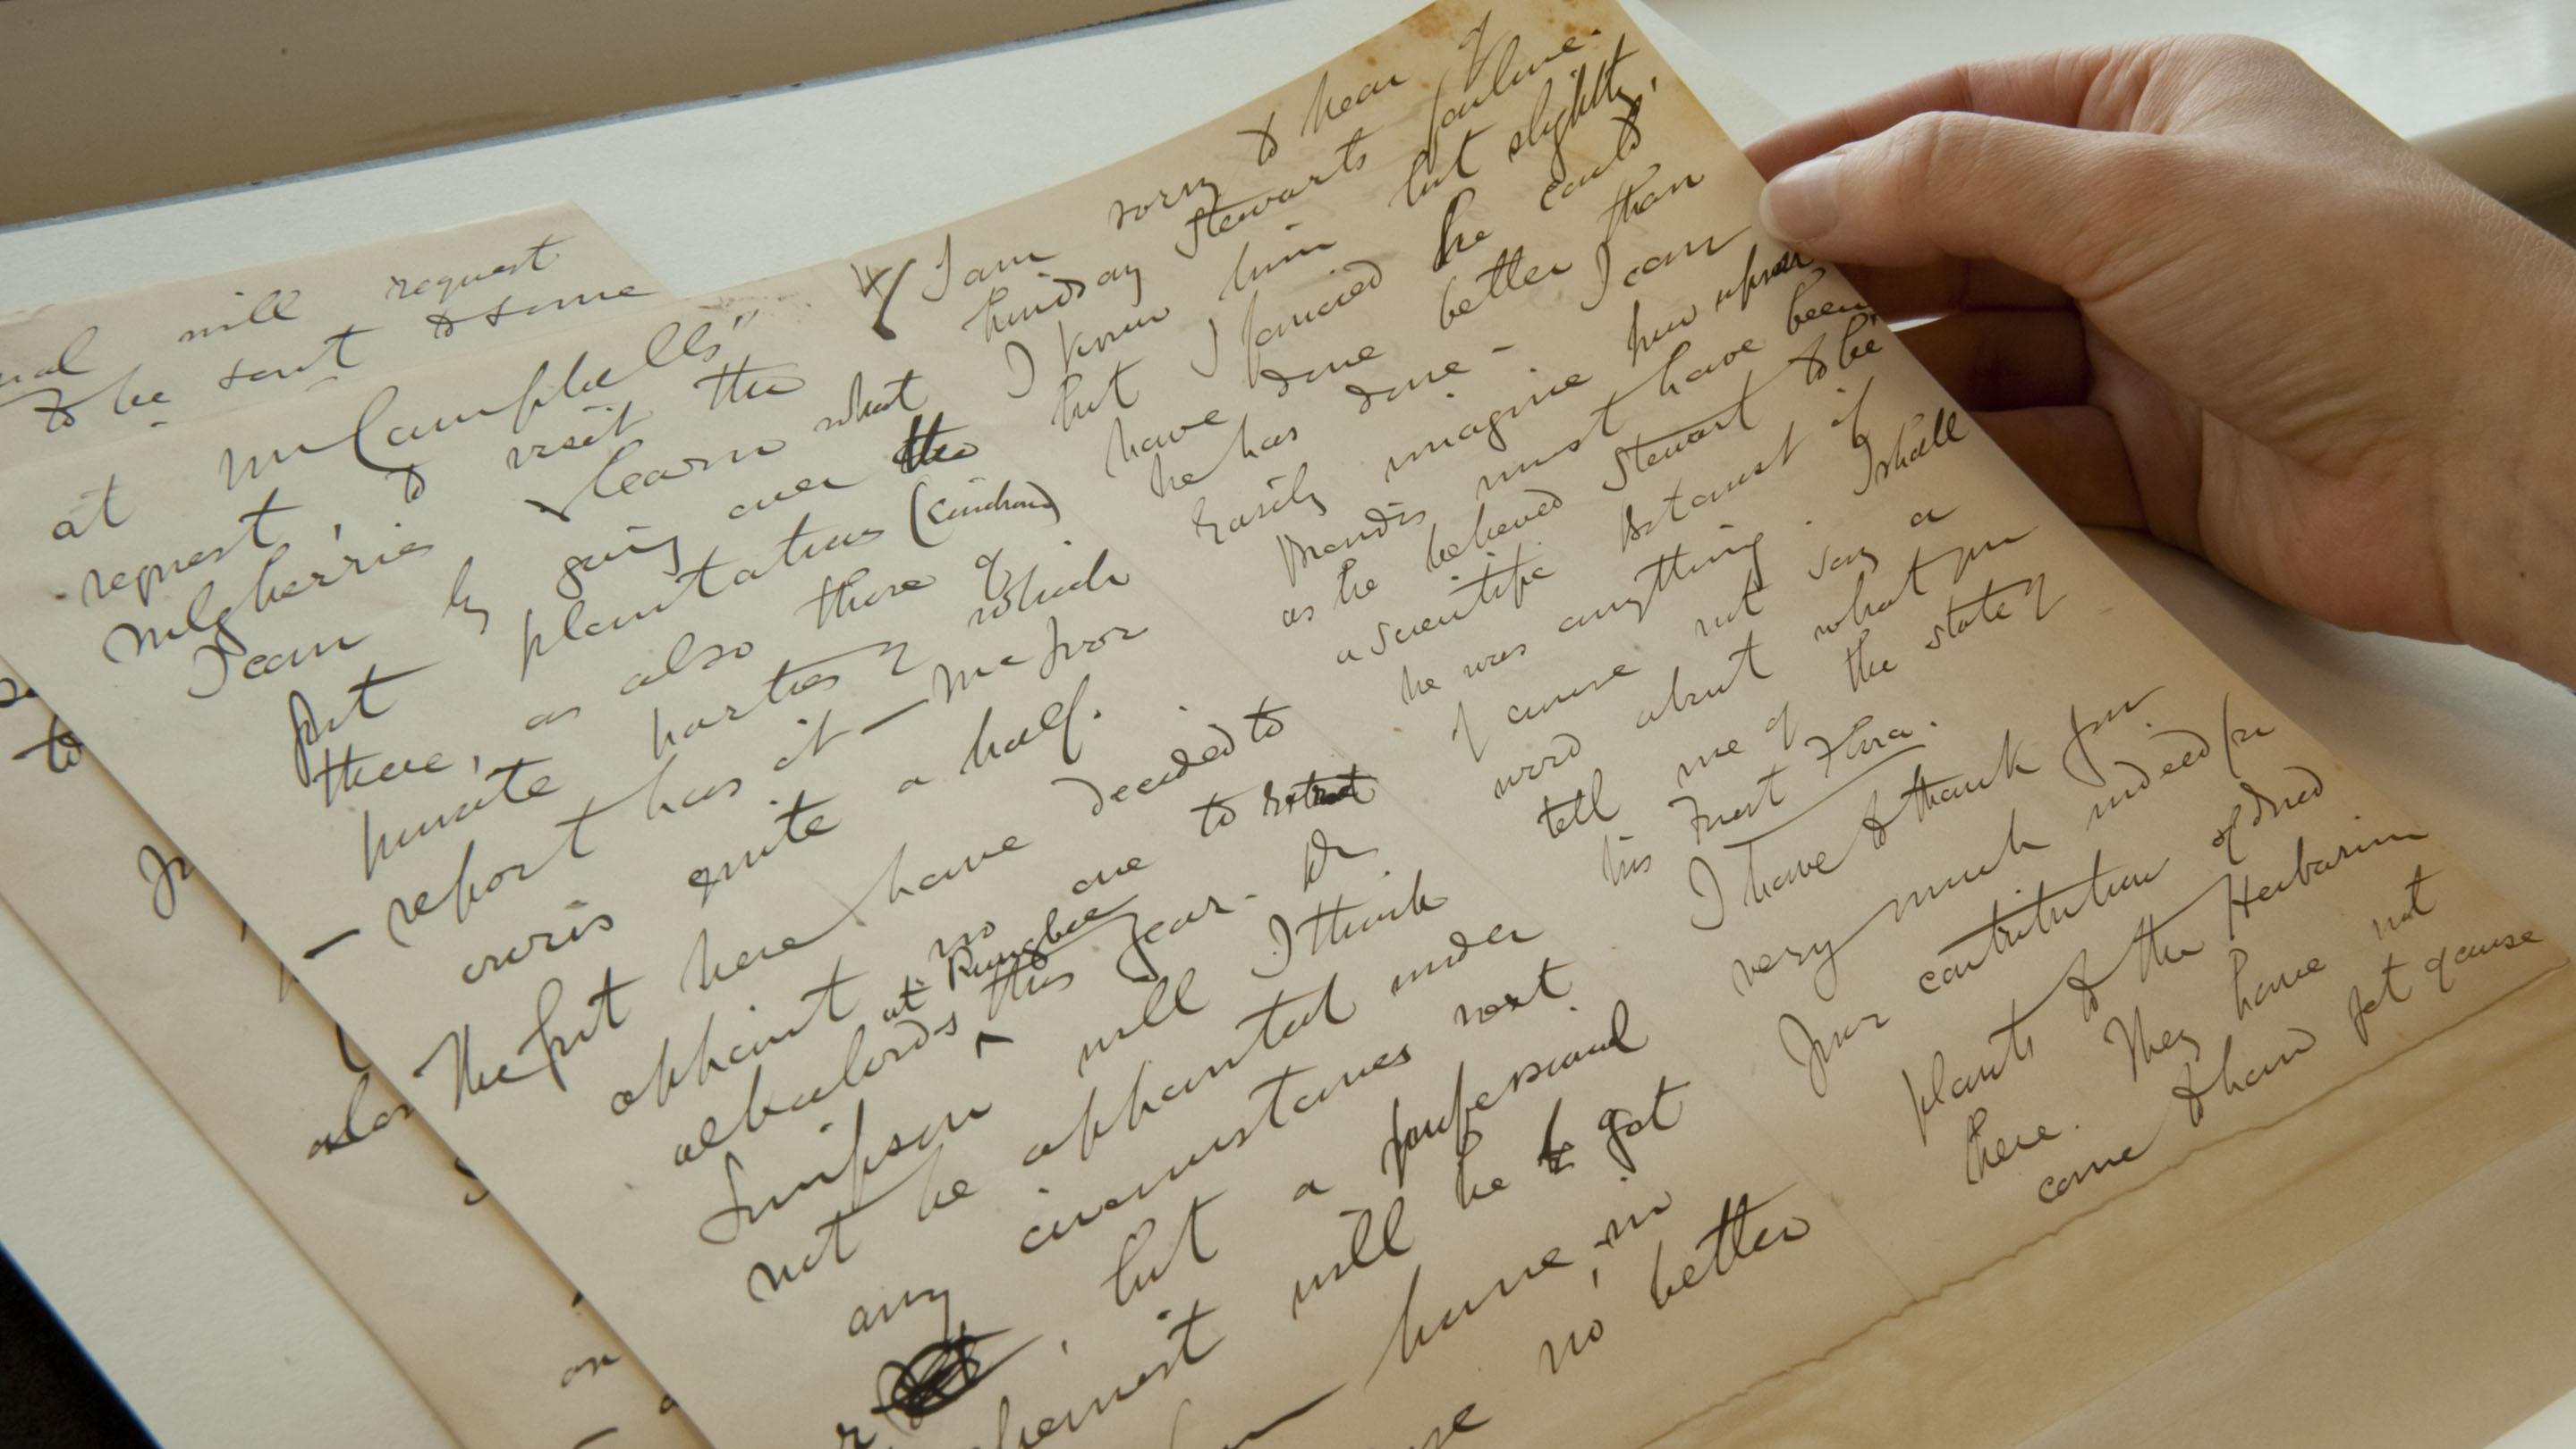 Letter from Kew's Archives